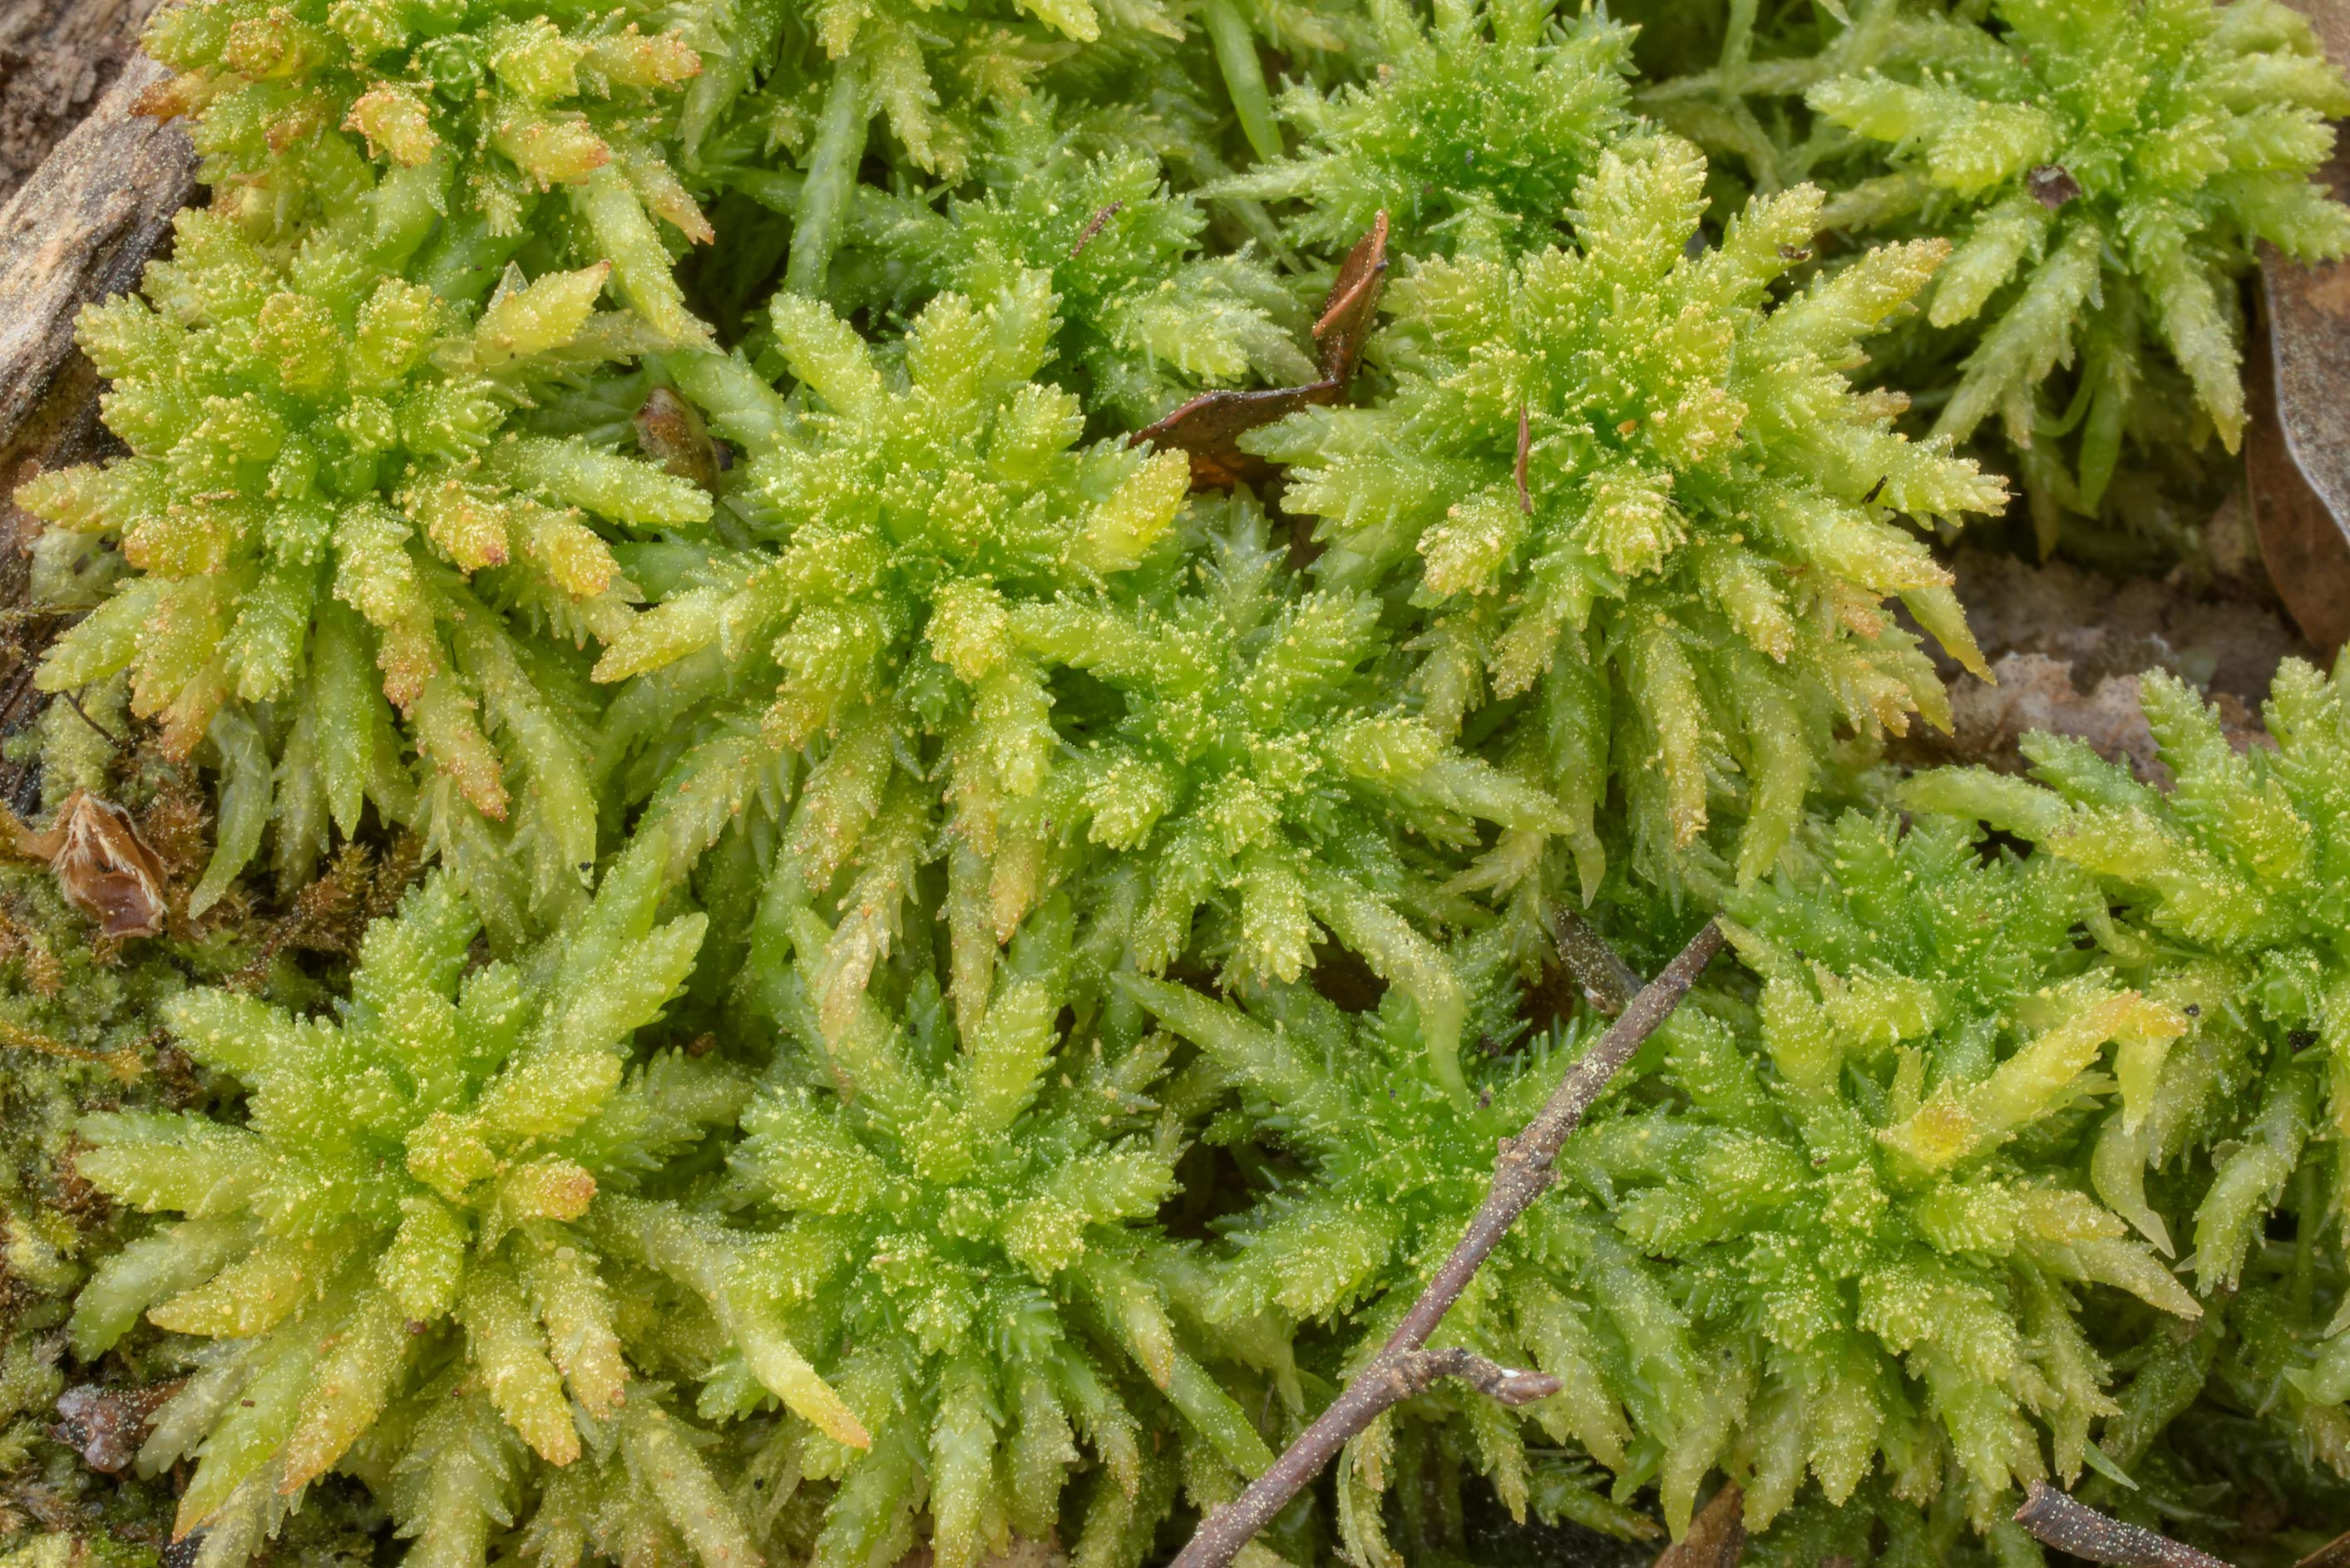 Texture of peat moss Sphagnum lescurii on...National Forest. Shepherd, Texas